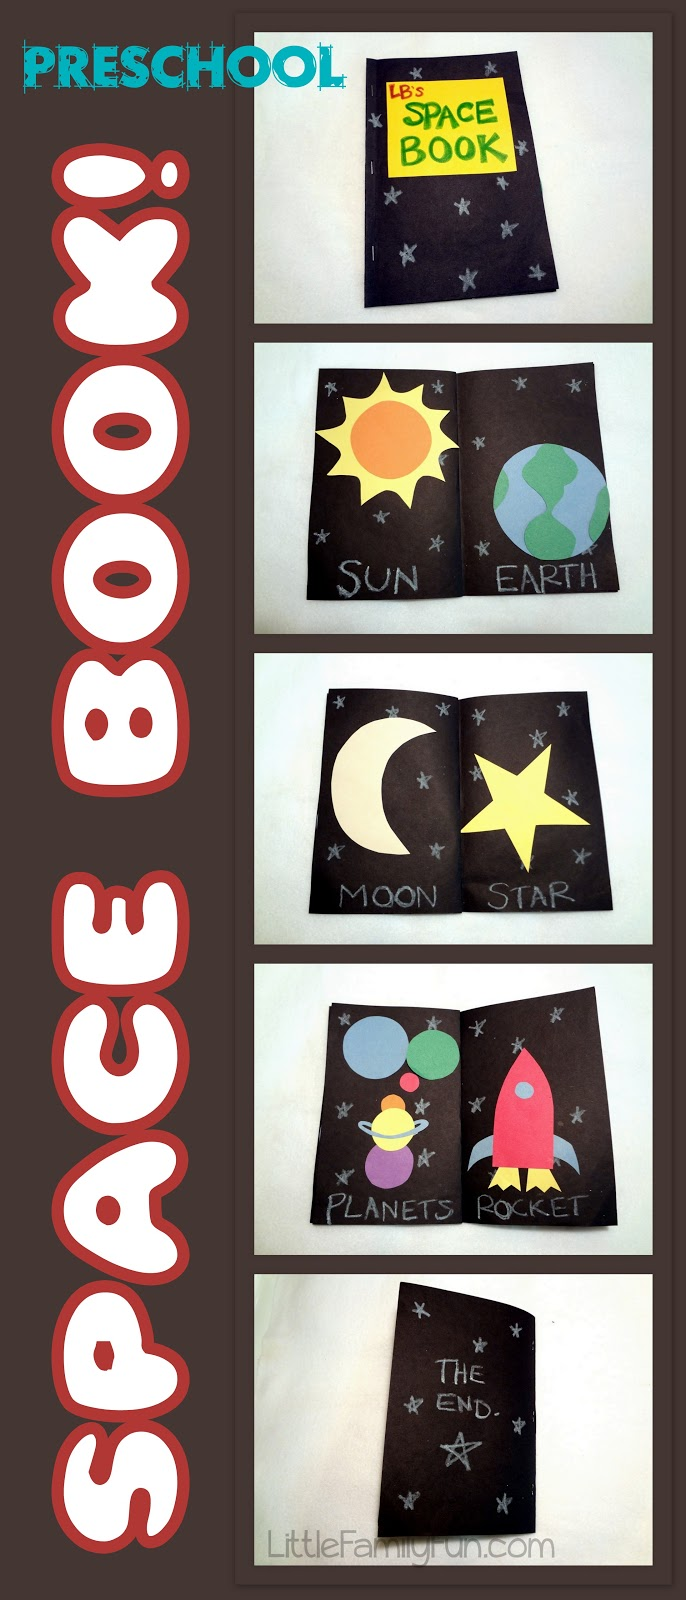 books about space for preschoolers preschool space book 475